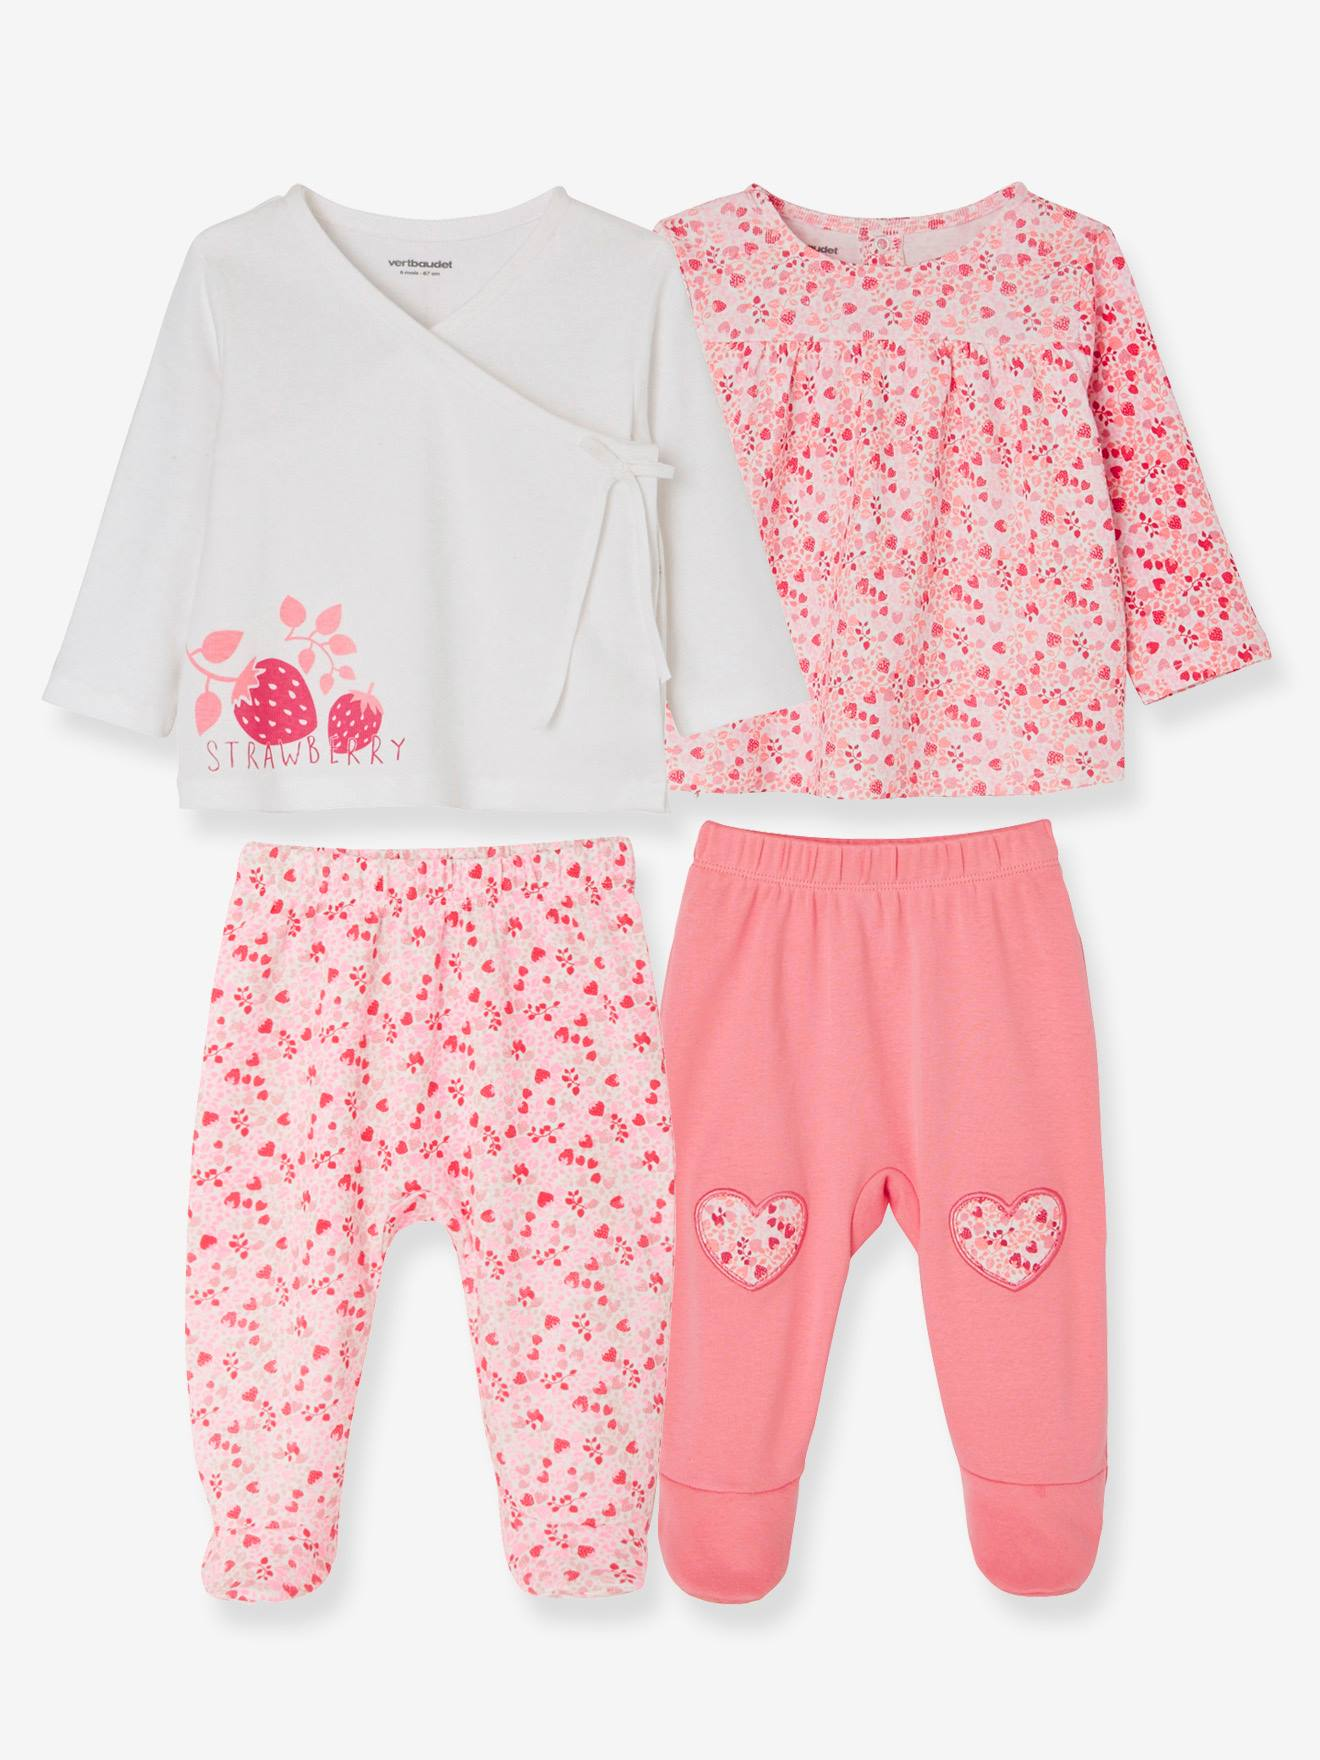 Title Description Keywords; May 25, Vertbaudet: Baby Clothes, Children's Clothing, Maternity Clothes & Nursery Furniture. Vertbaudet - Shop online for baby & children's clothes, shoes, maternity wear, school wear & nursery items.